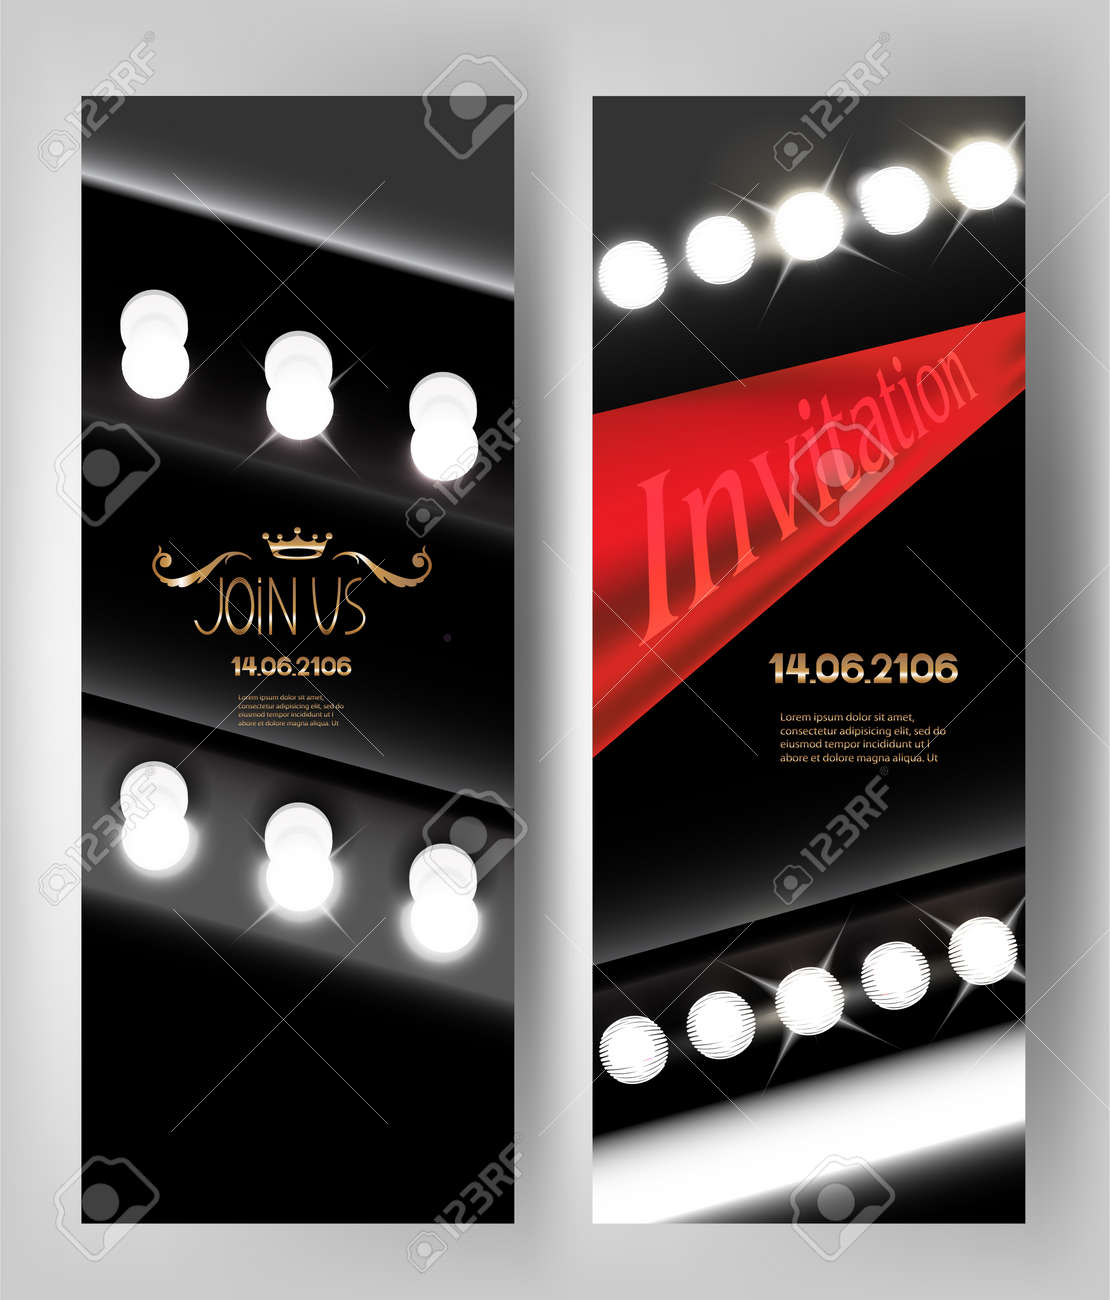 Abstract invitation card with light bulbs and red ribbon vector abstract invitation card with light bulbs and red ribbon vector illustration stock vector 61252645 stopboris Image collections